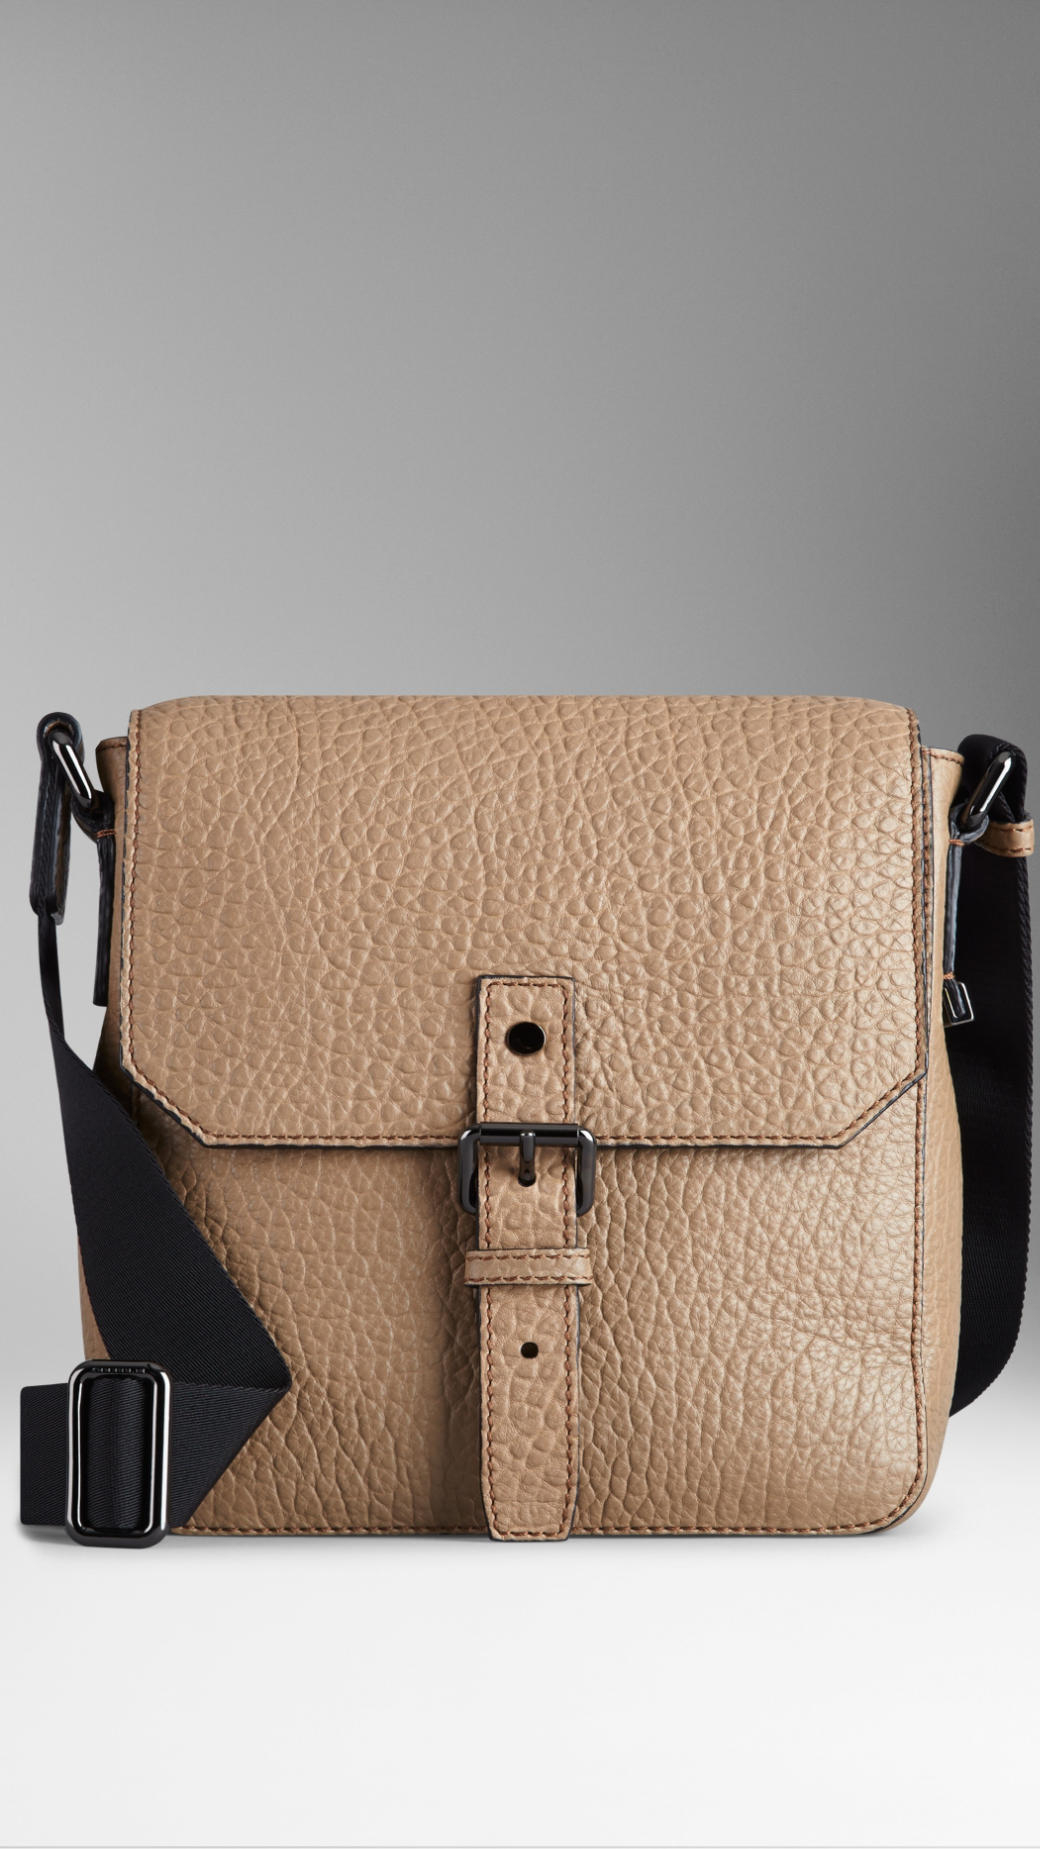 Burberry Signature Grain Leather Crossbody Bag in Natural for Men - Lyst a09bec3727396